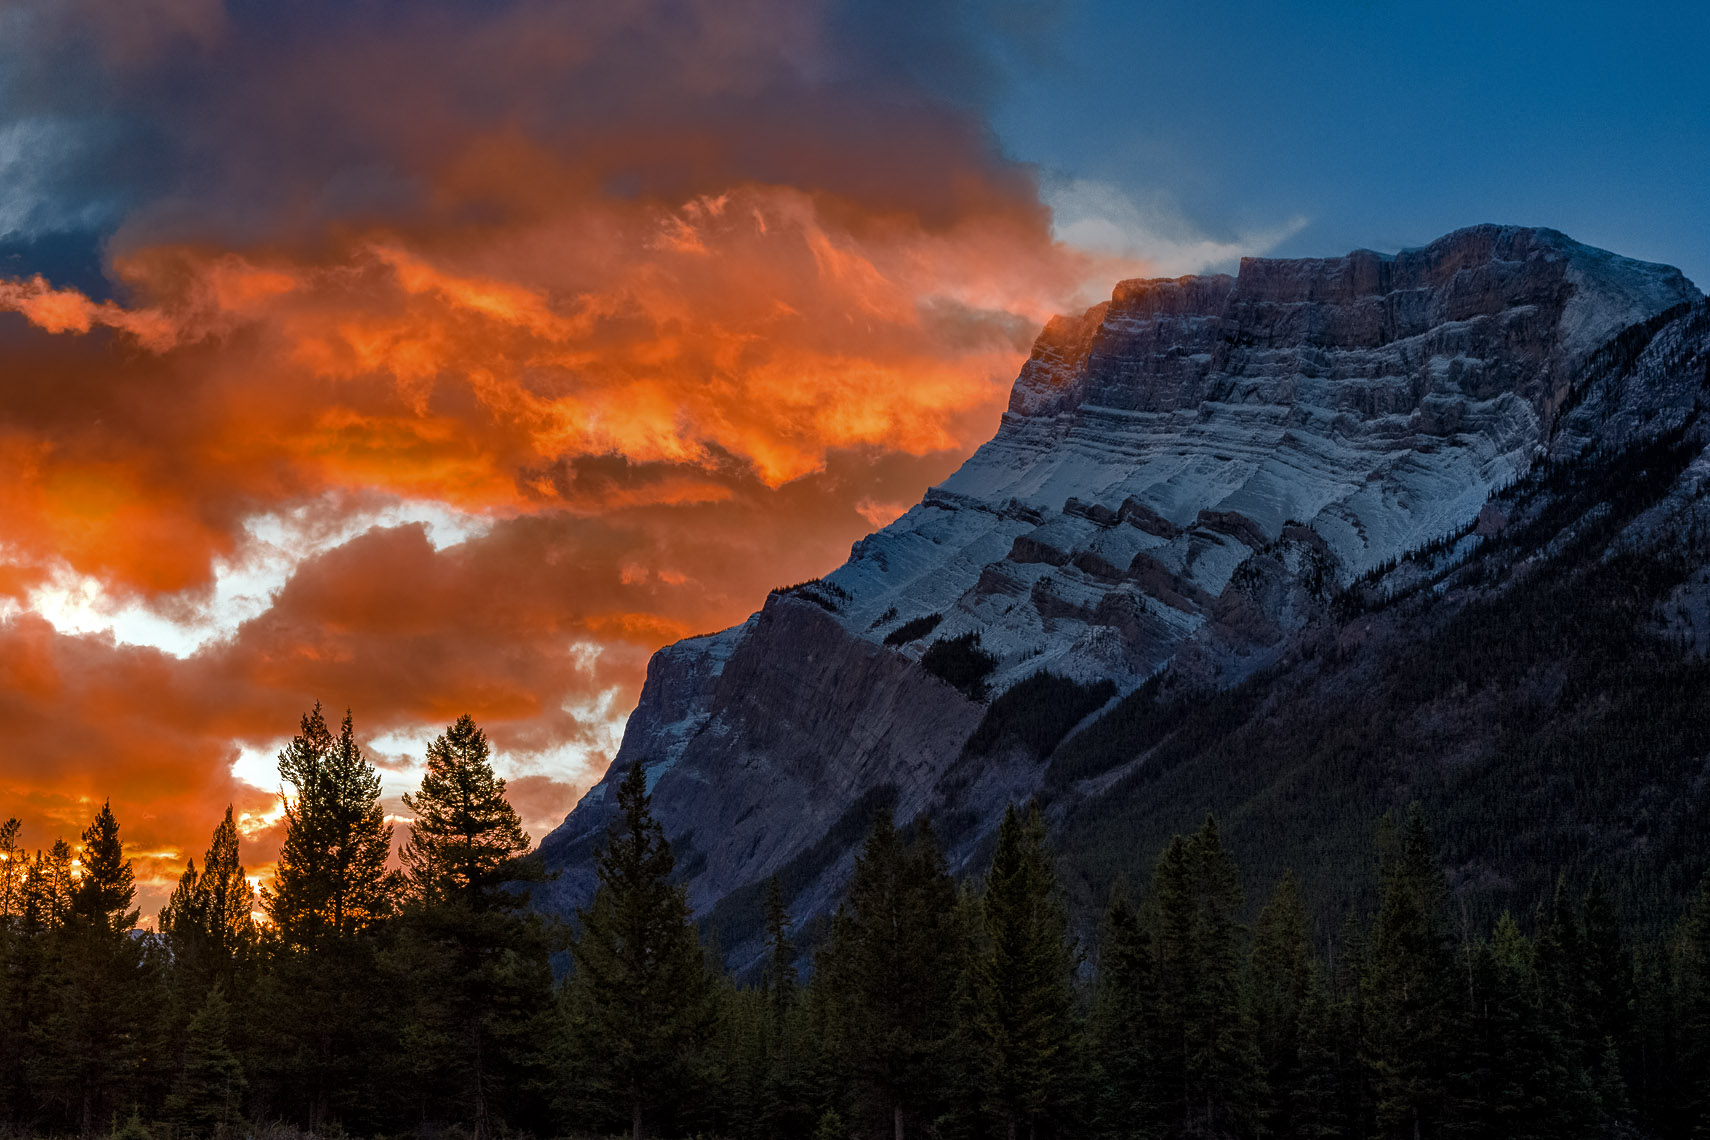 Mt Rundle from the Hoodoo Trail